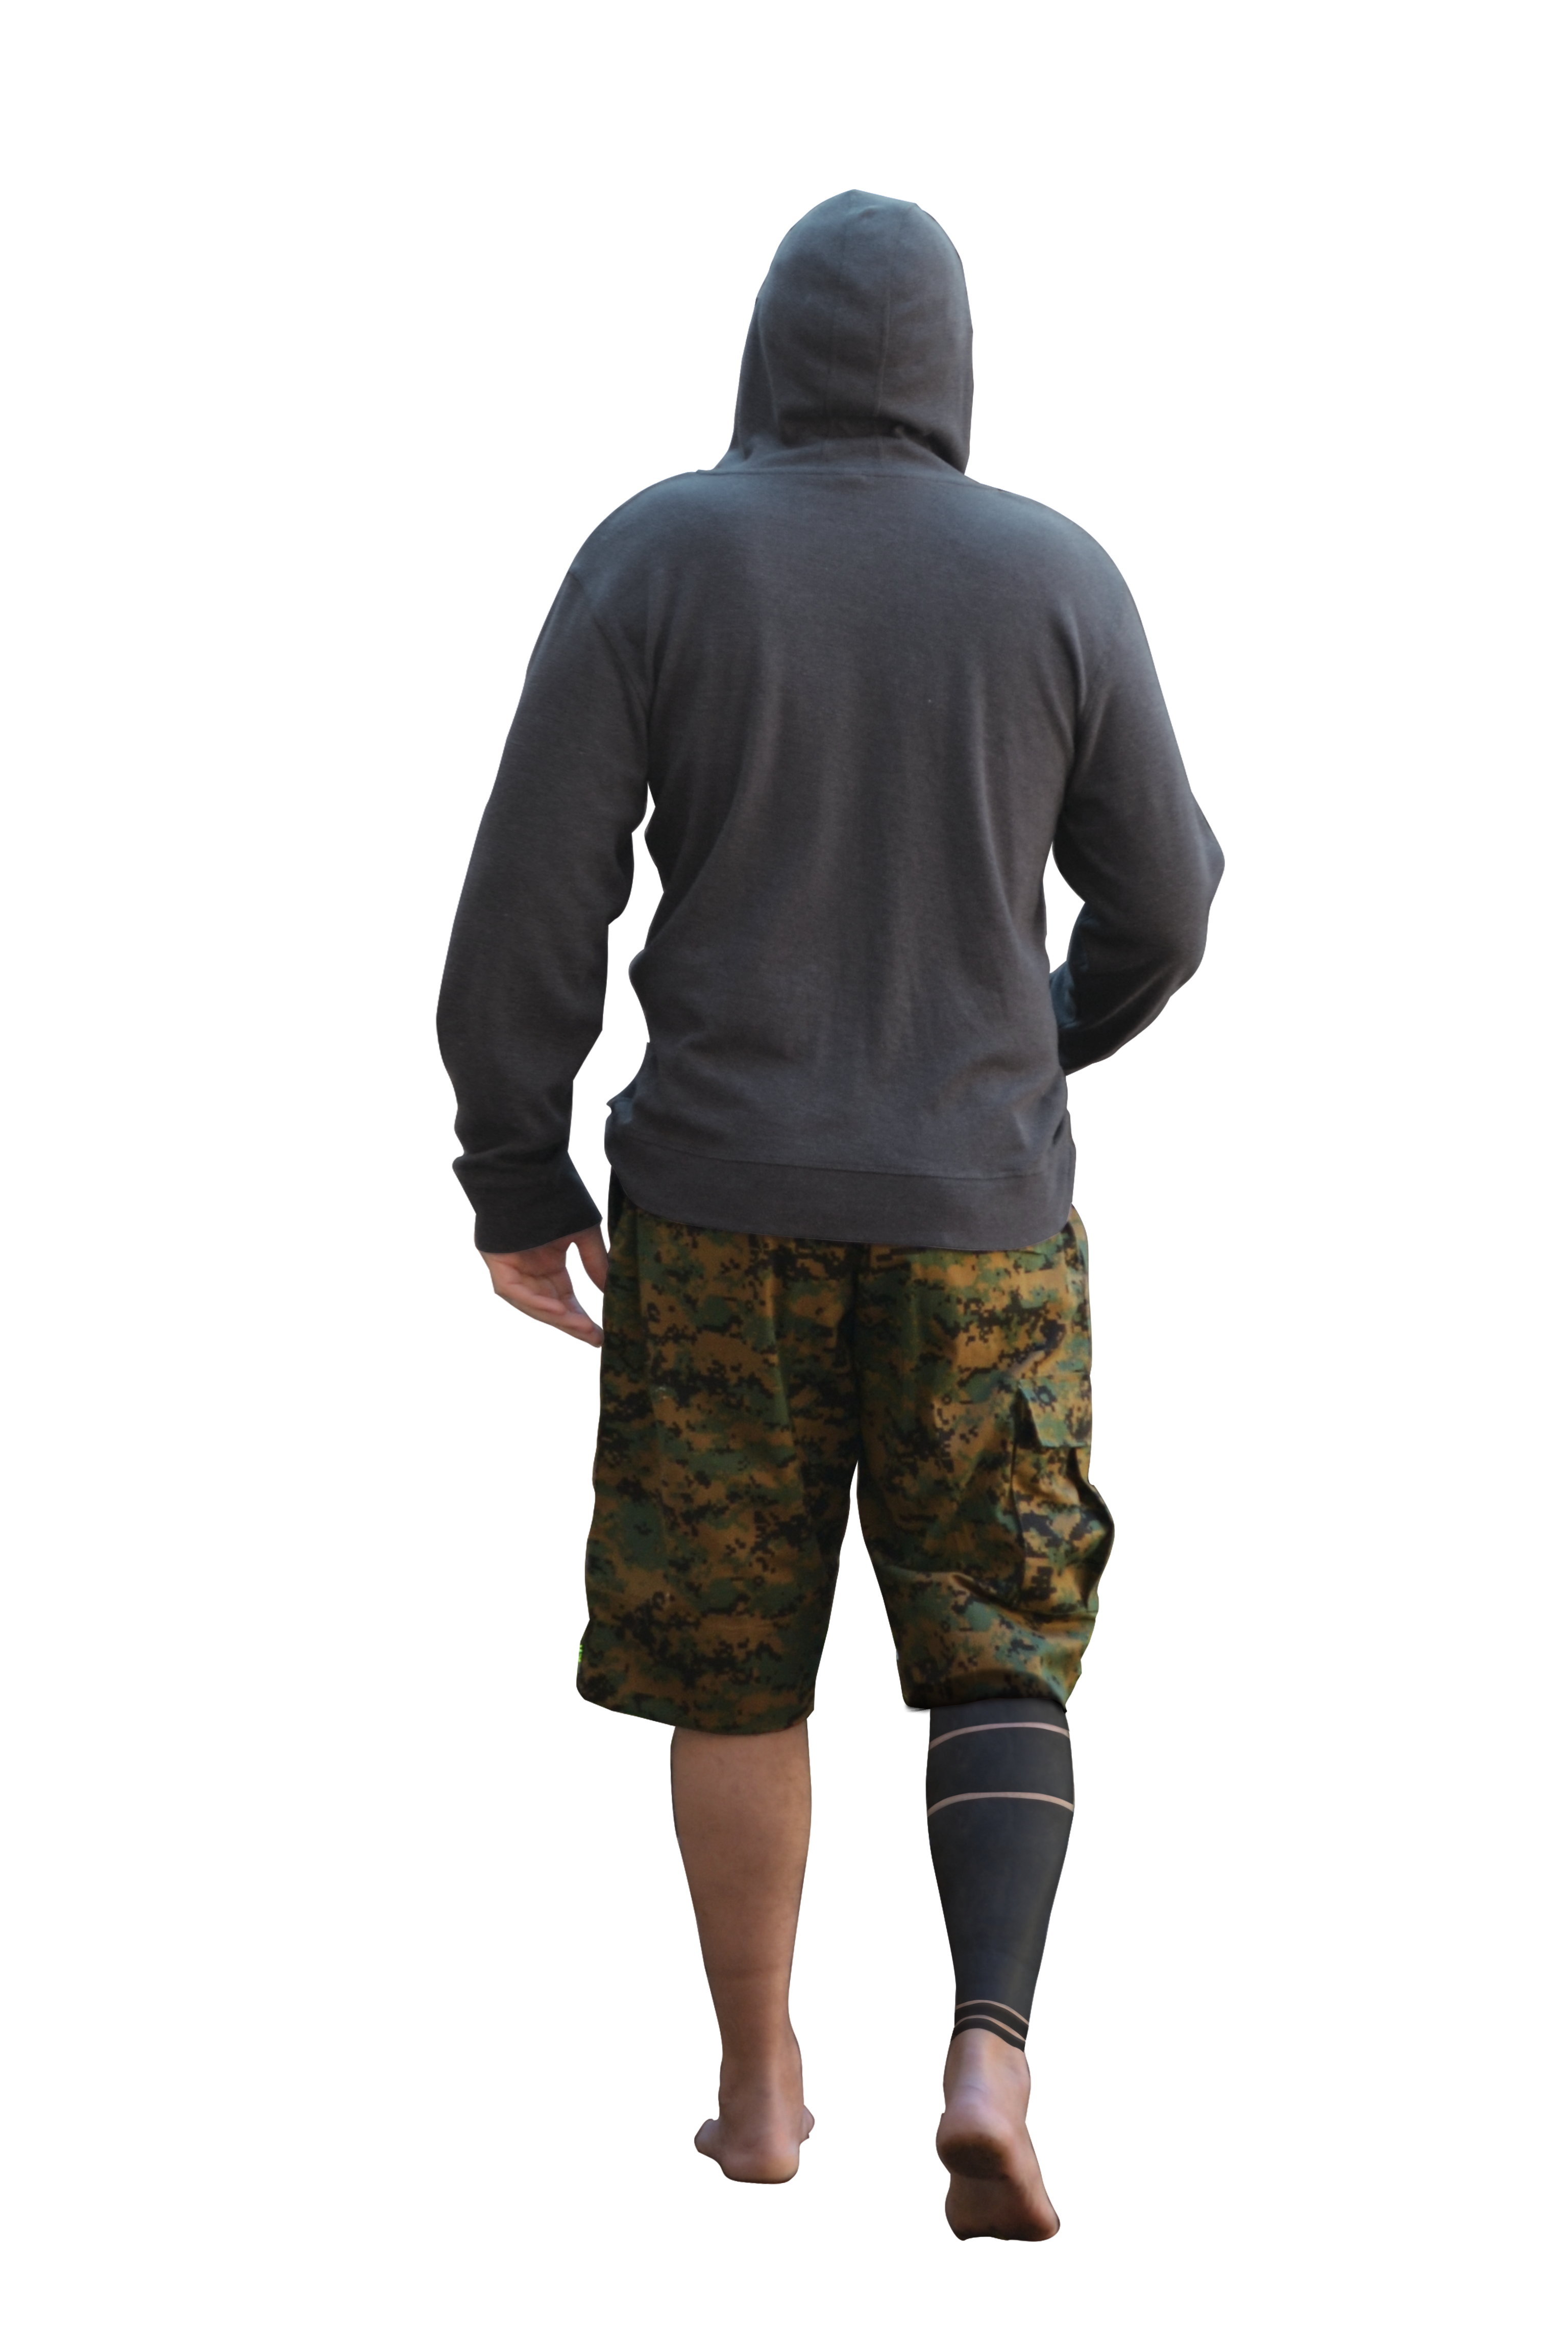 full body hoodie back of guy in hoodie walking png by donkeysneakers on 3364